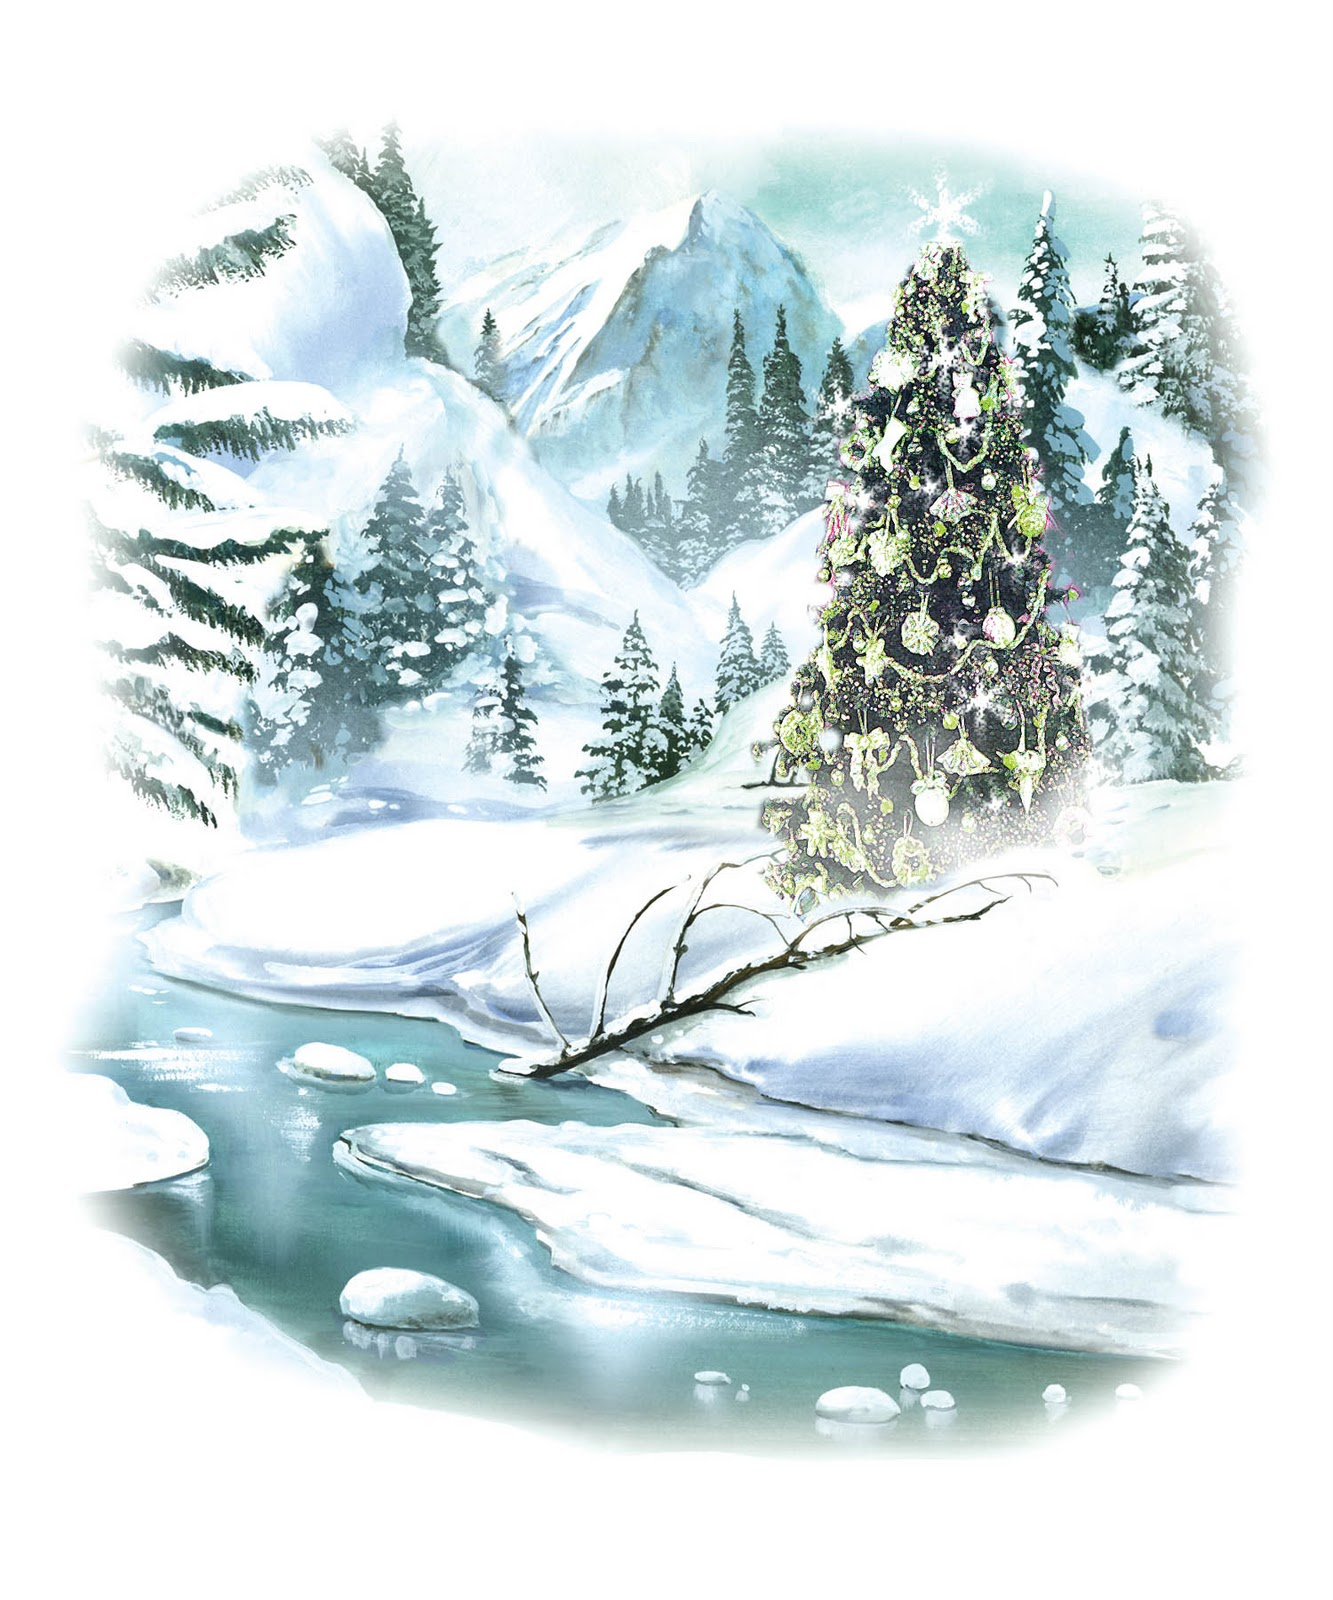 Victorian clipart christmas winter scene Free collection Tree clipart Clipart